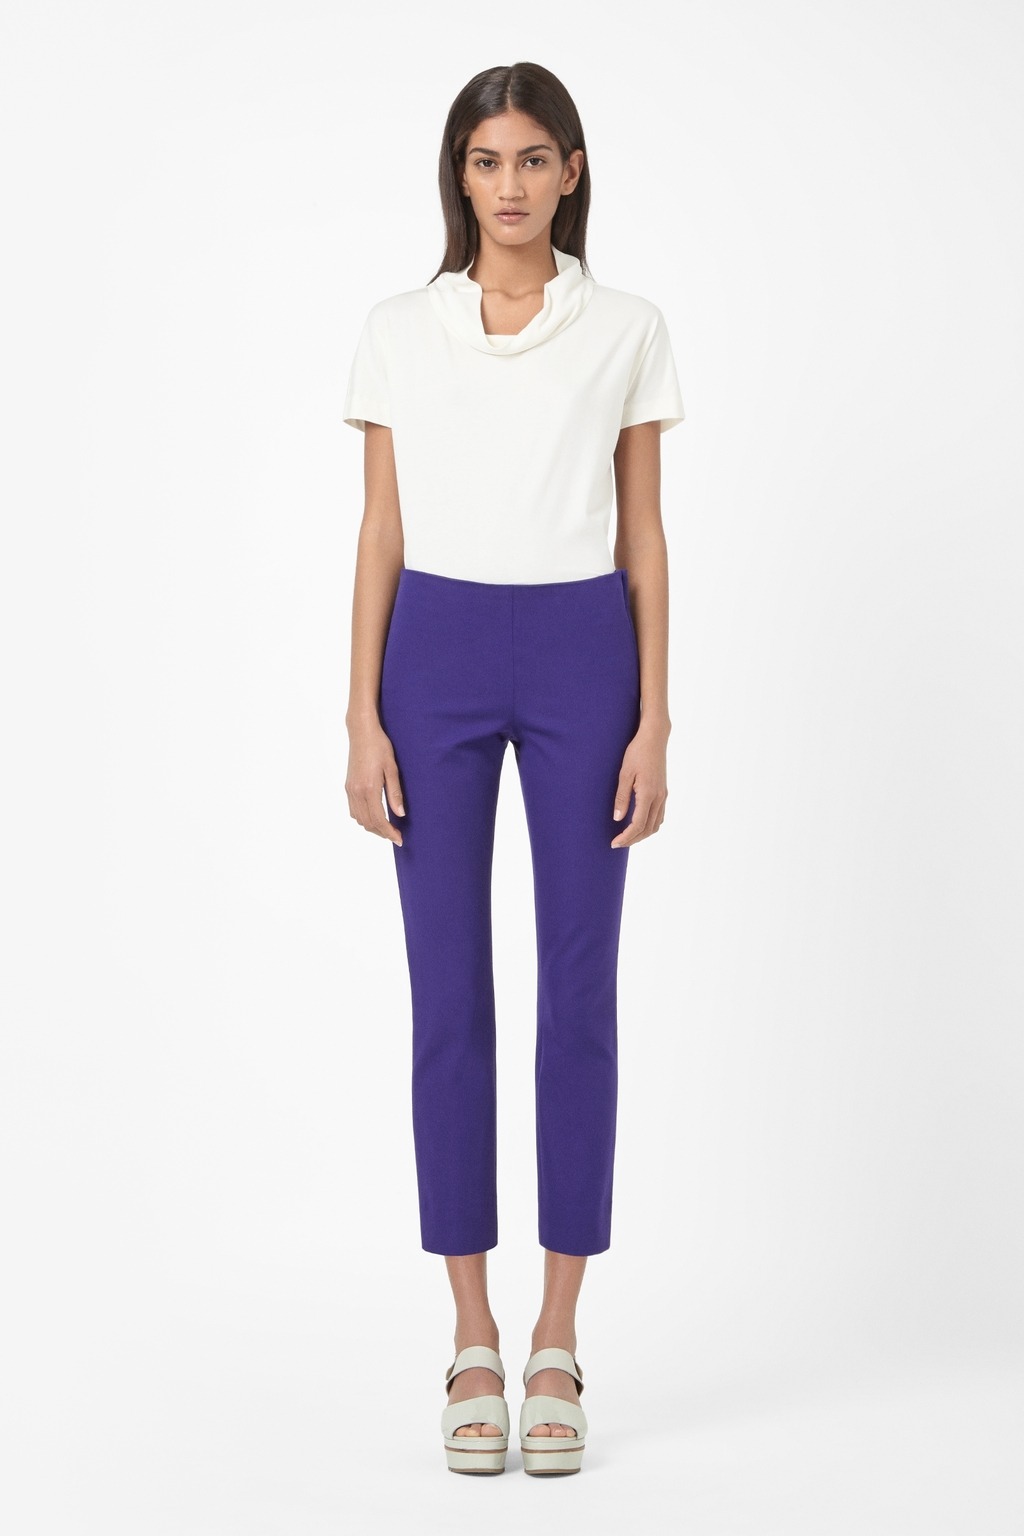 Cropped Side Zip Trousers - pattern: plain; waist: mid/regular rise; predominant colour: purple; occasions: casual, evening, work, creative work; length: calf length; style: chino; fibres: cotton - stretch; texture group: cotton feel fabrics; fit: slim leg; pattern type: fabric; season: s/s 2014